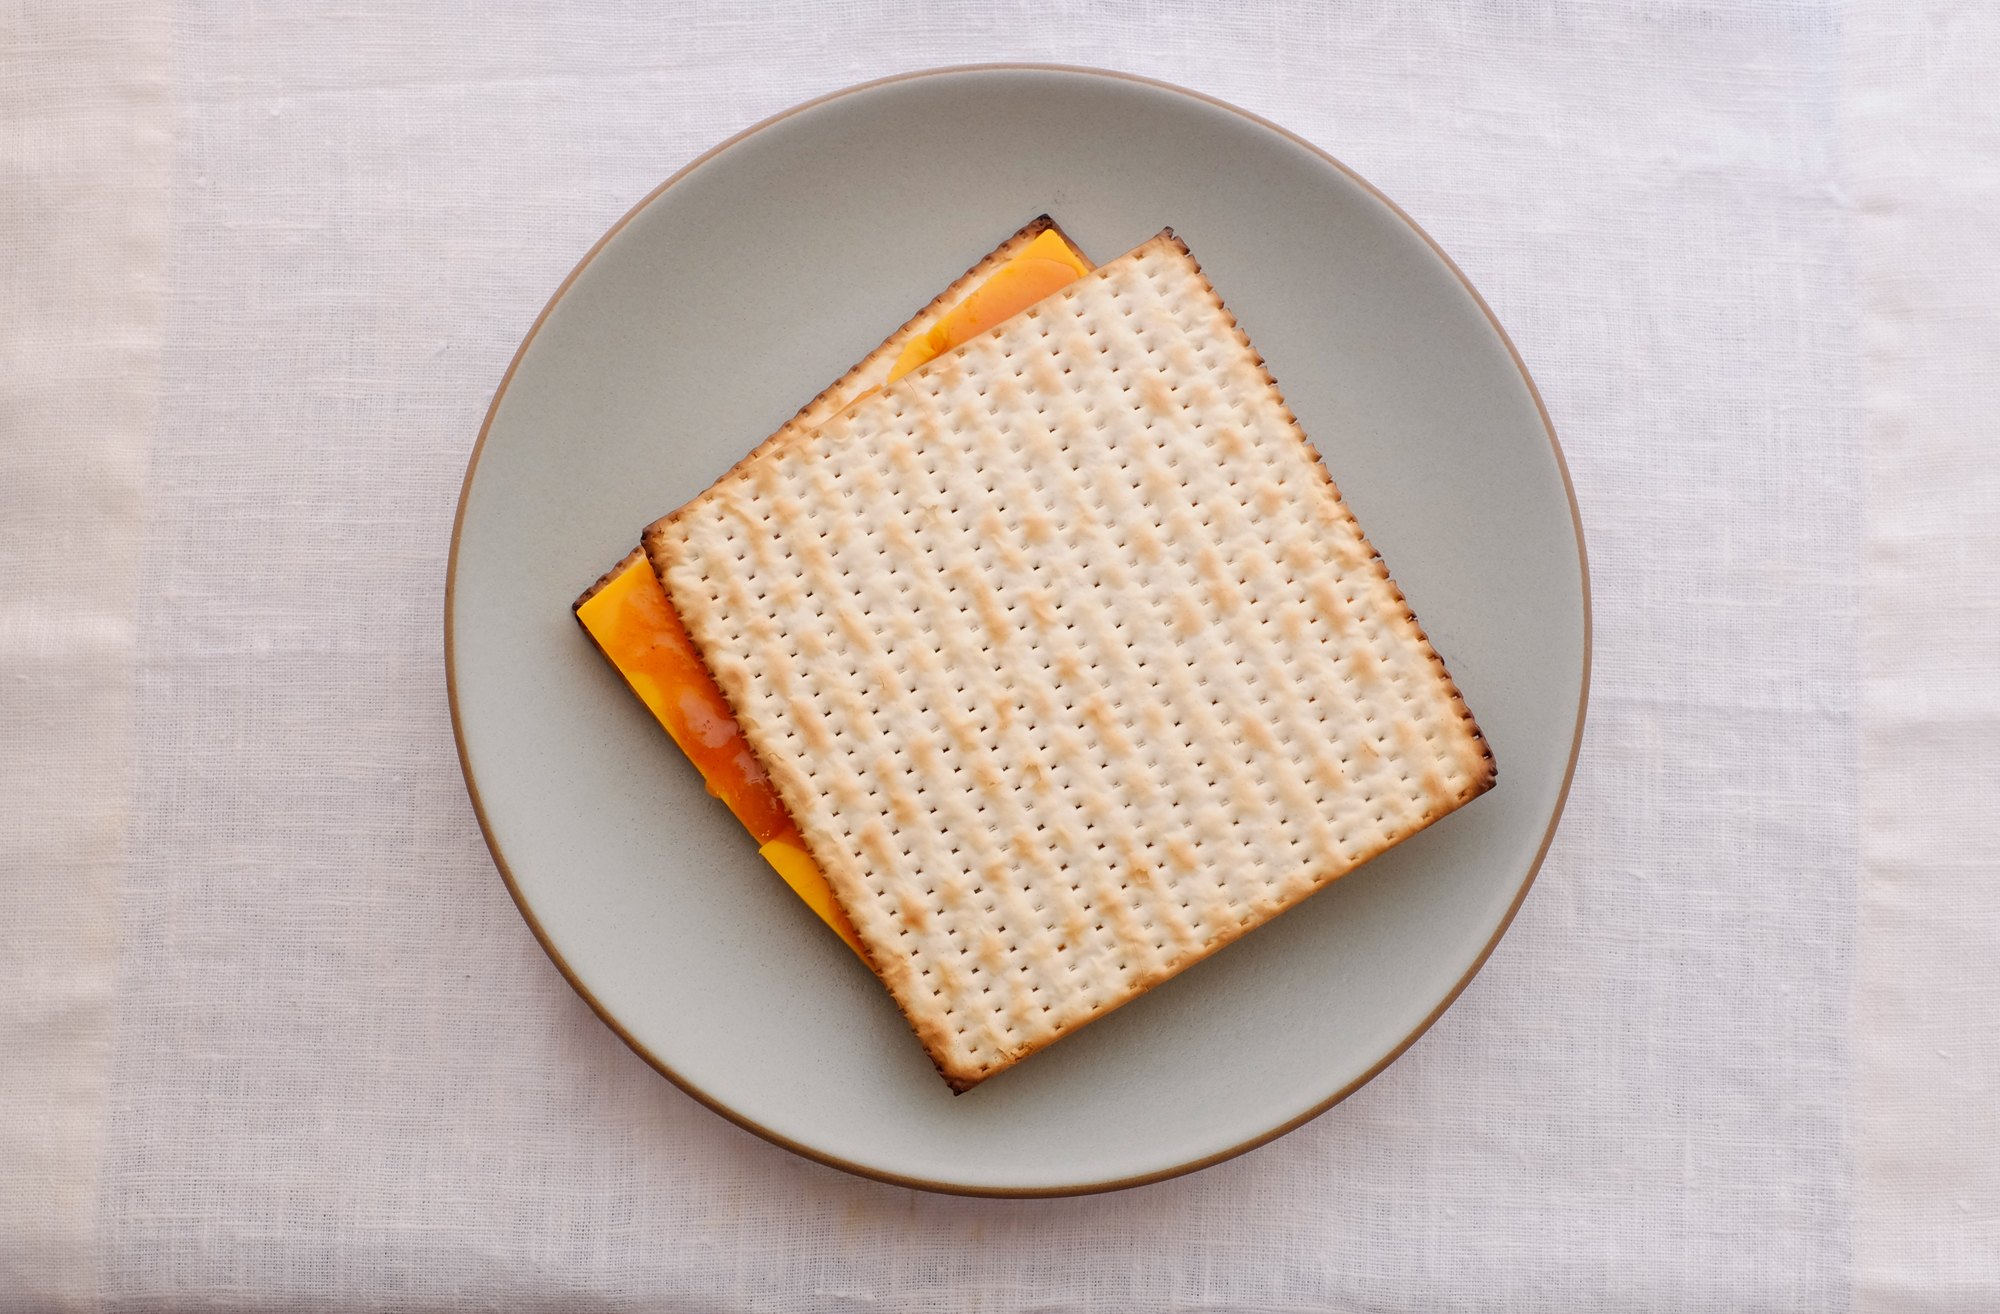 Cheddar and Chutney on Matzo